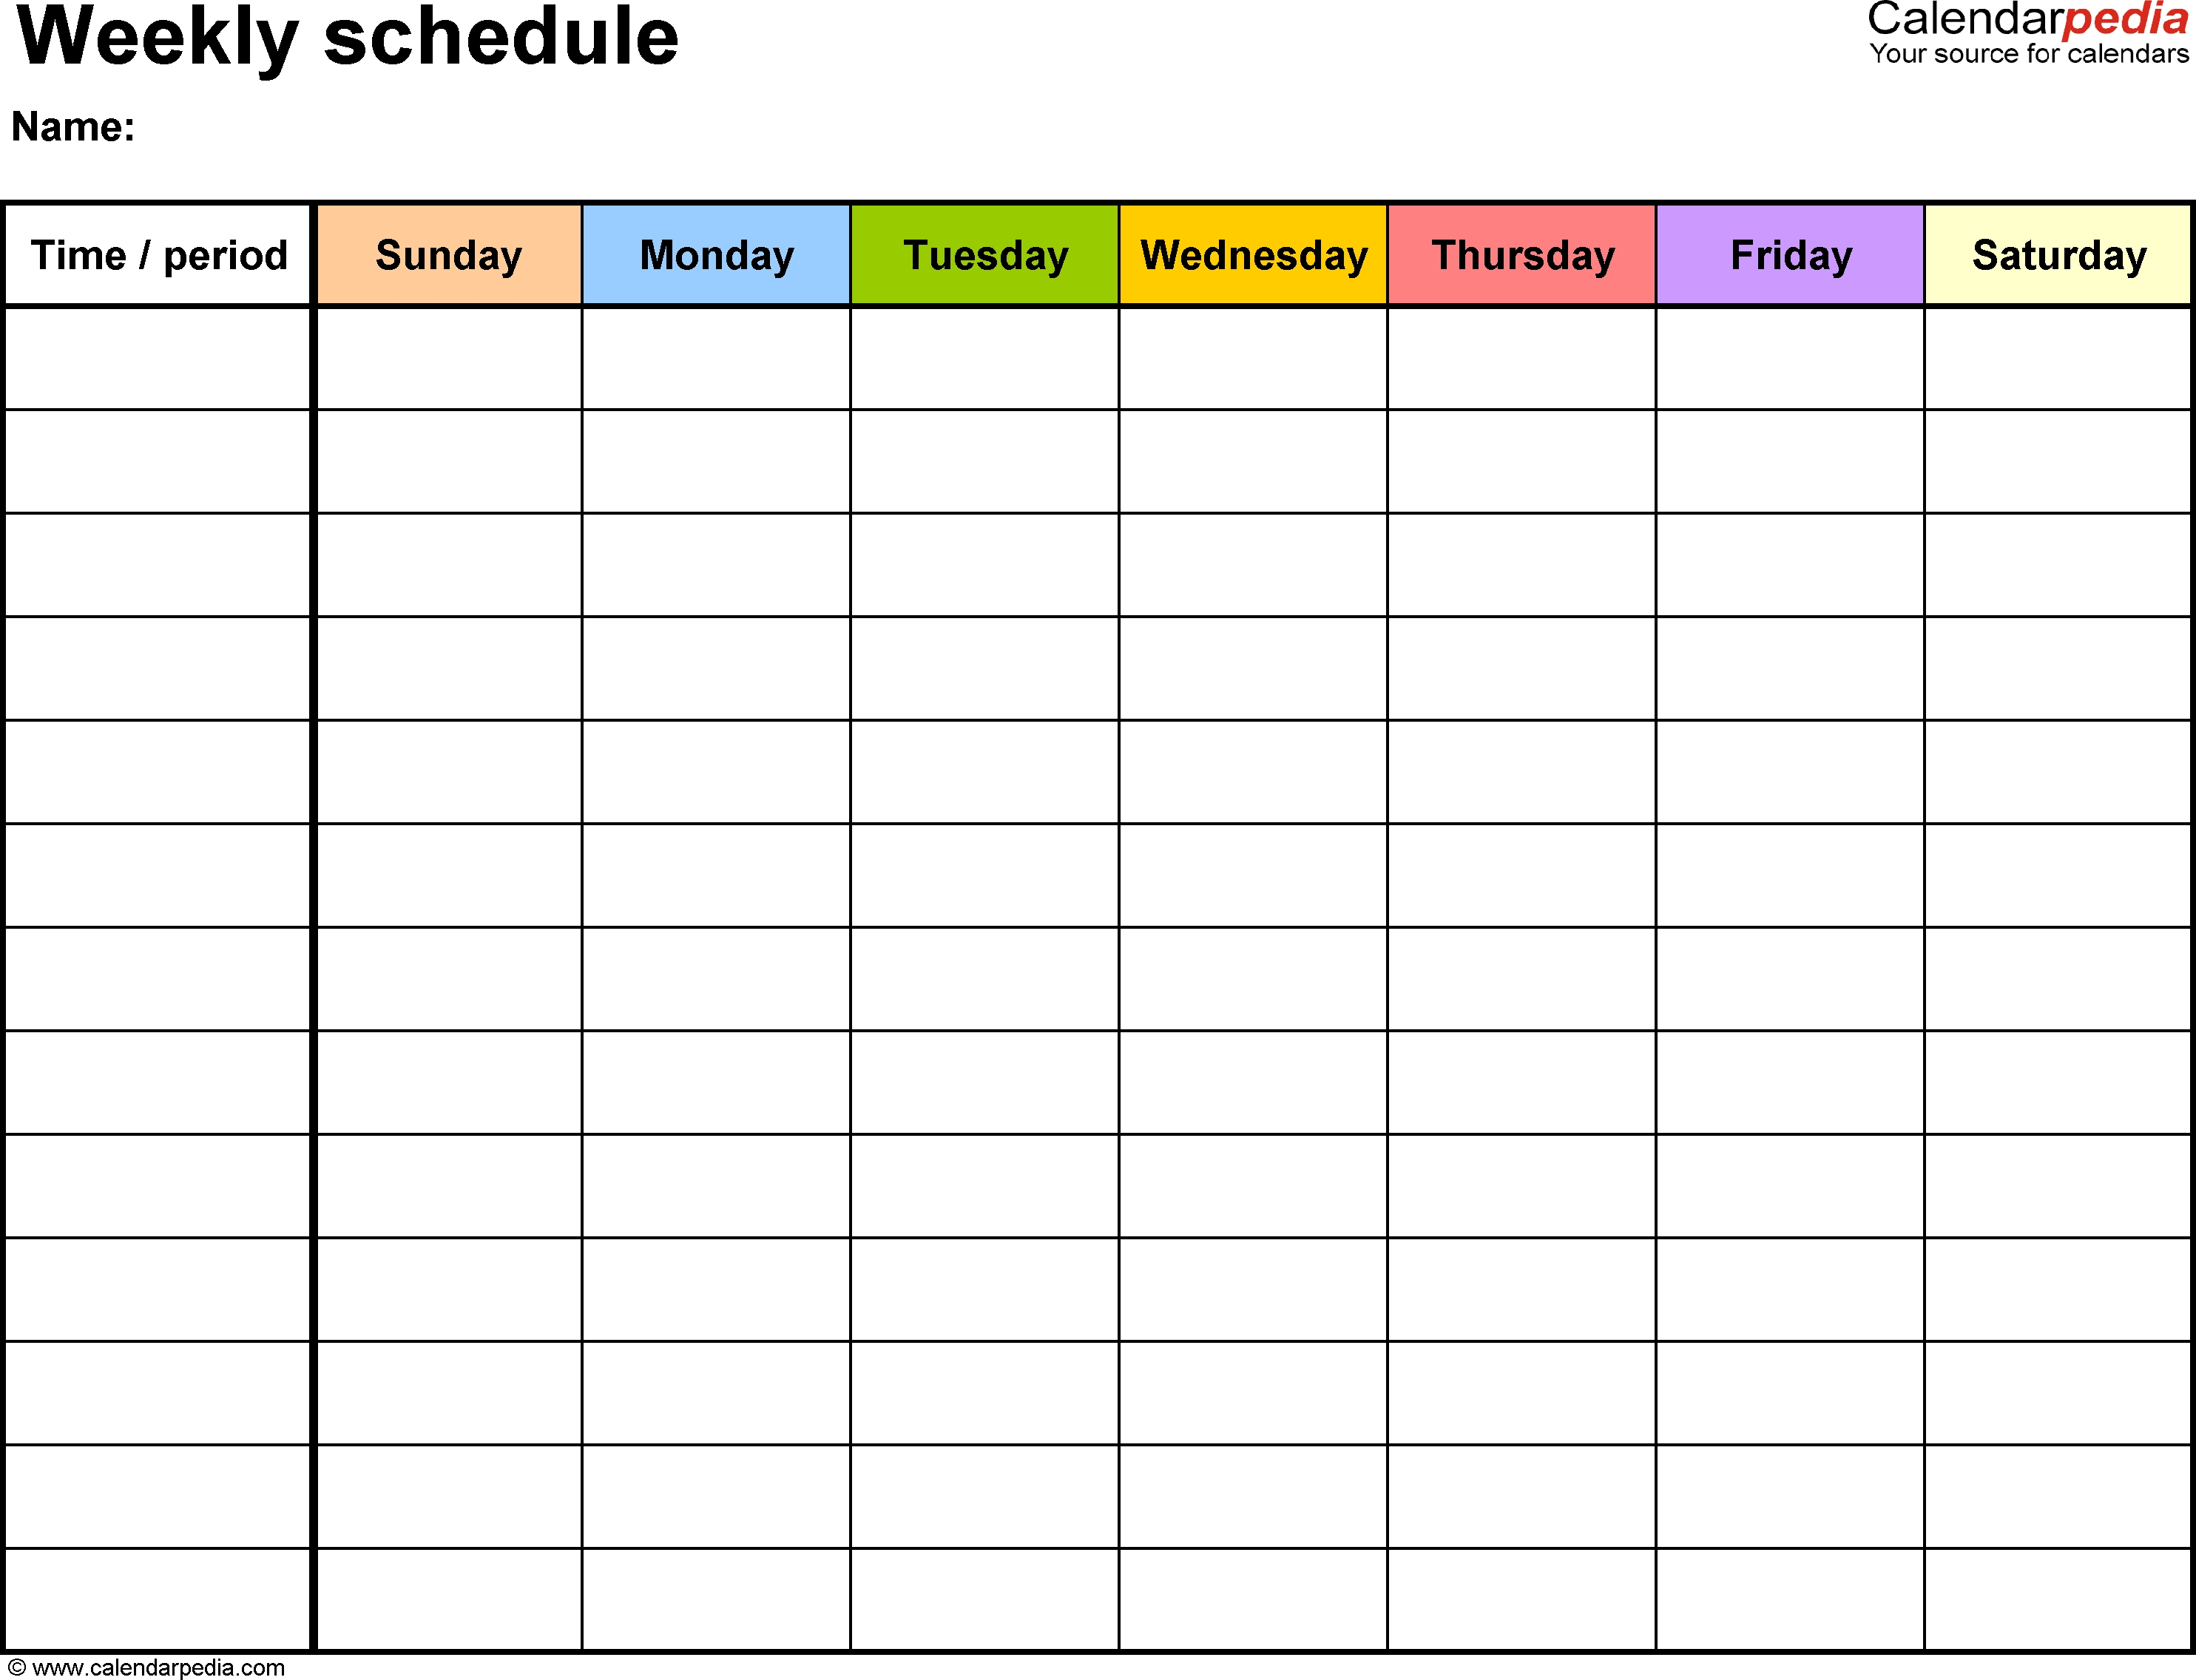 Free Weekly Schedule Templates For Pdf - 18 Templates throughout Printable Weekly Schedule With Hours Monday To Friday